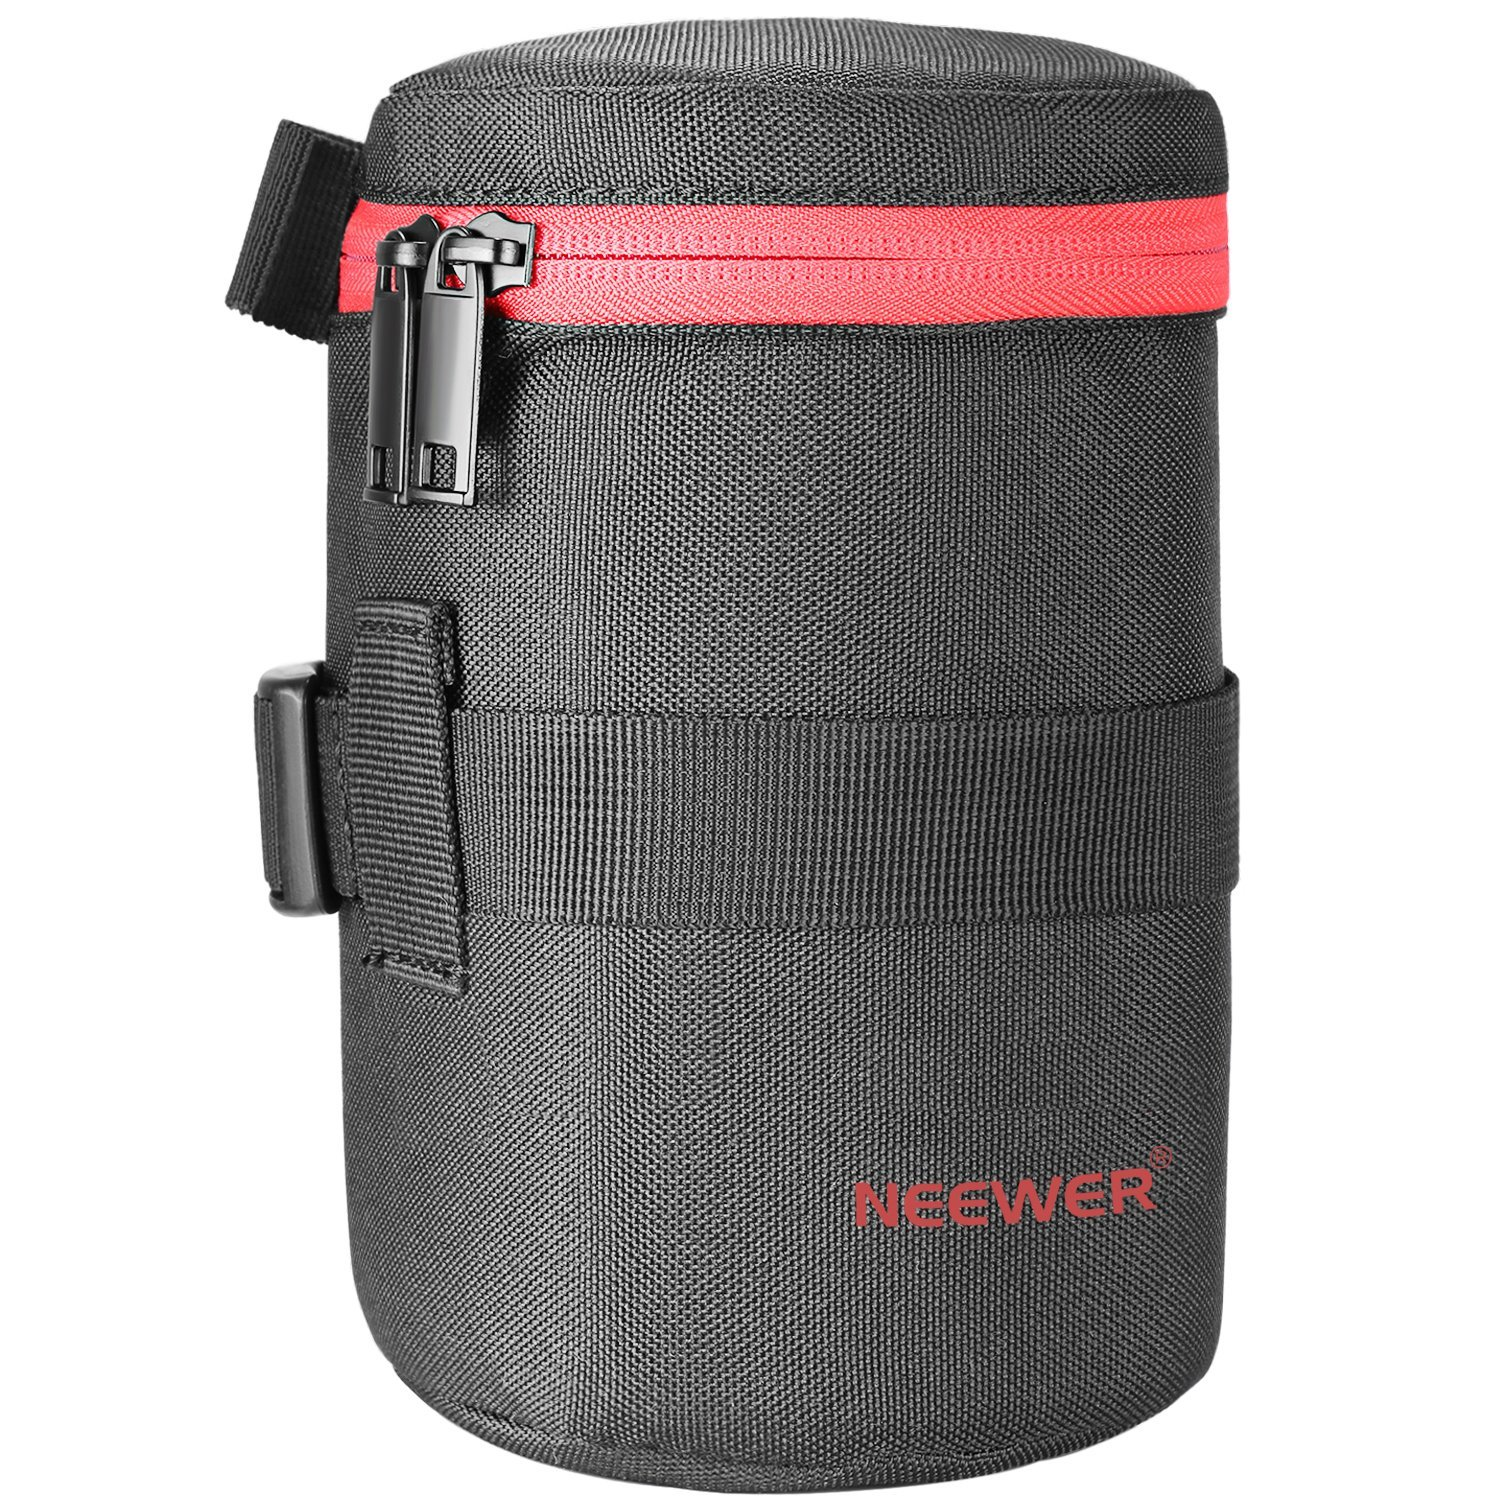 Neewer NW-L2040-R Portable Thick Padded Protective Water Resistant Durable Nylon Lens Pouch Bag for 18-300MM Lens, Such as Canon 100MM 70-300lS 75-300 and Nikon 55-300 28-300 105VR 70-300 by Neewer